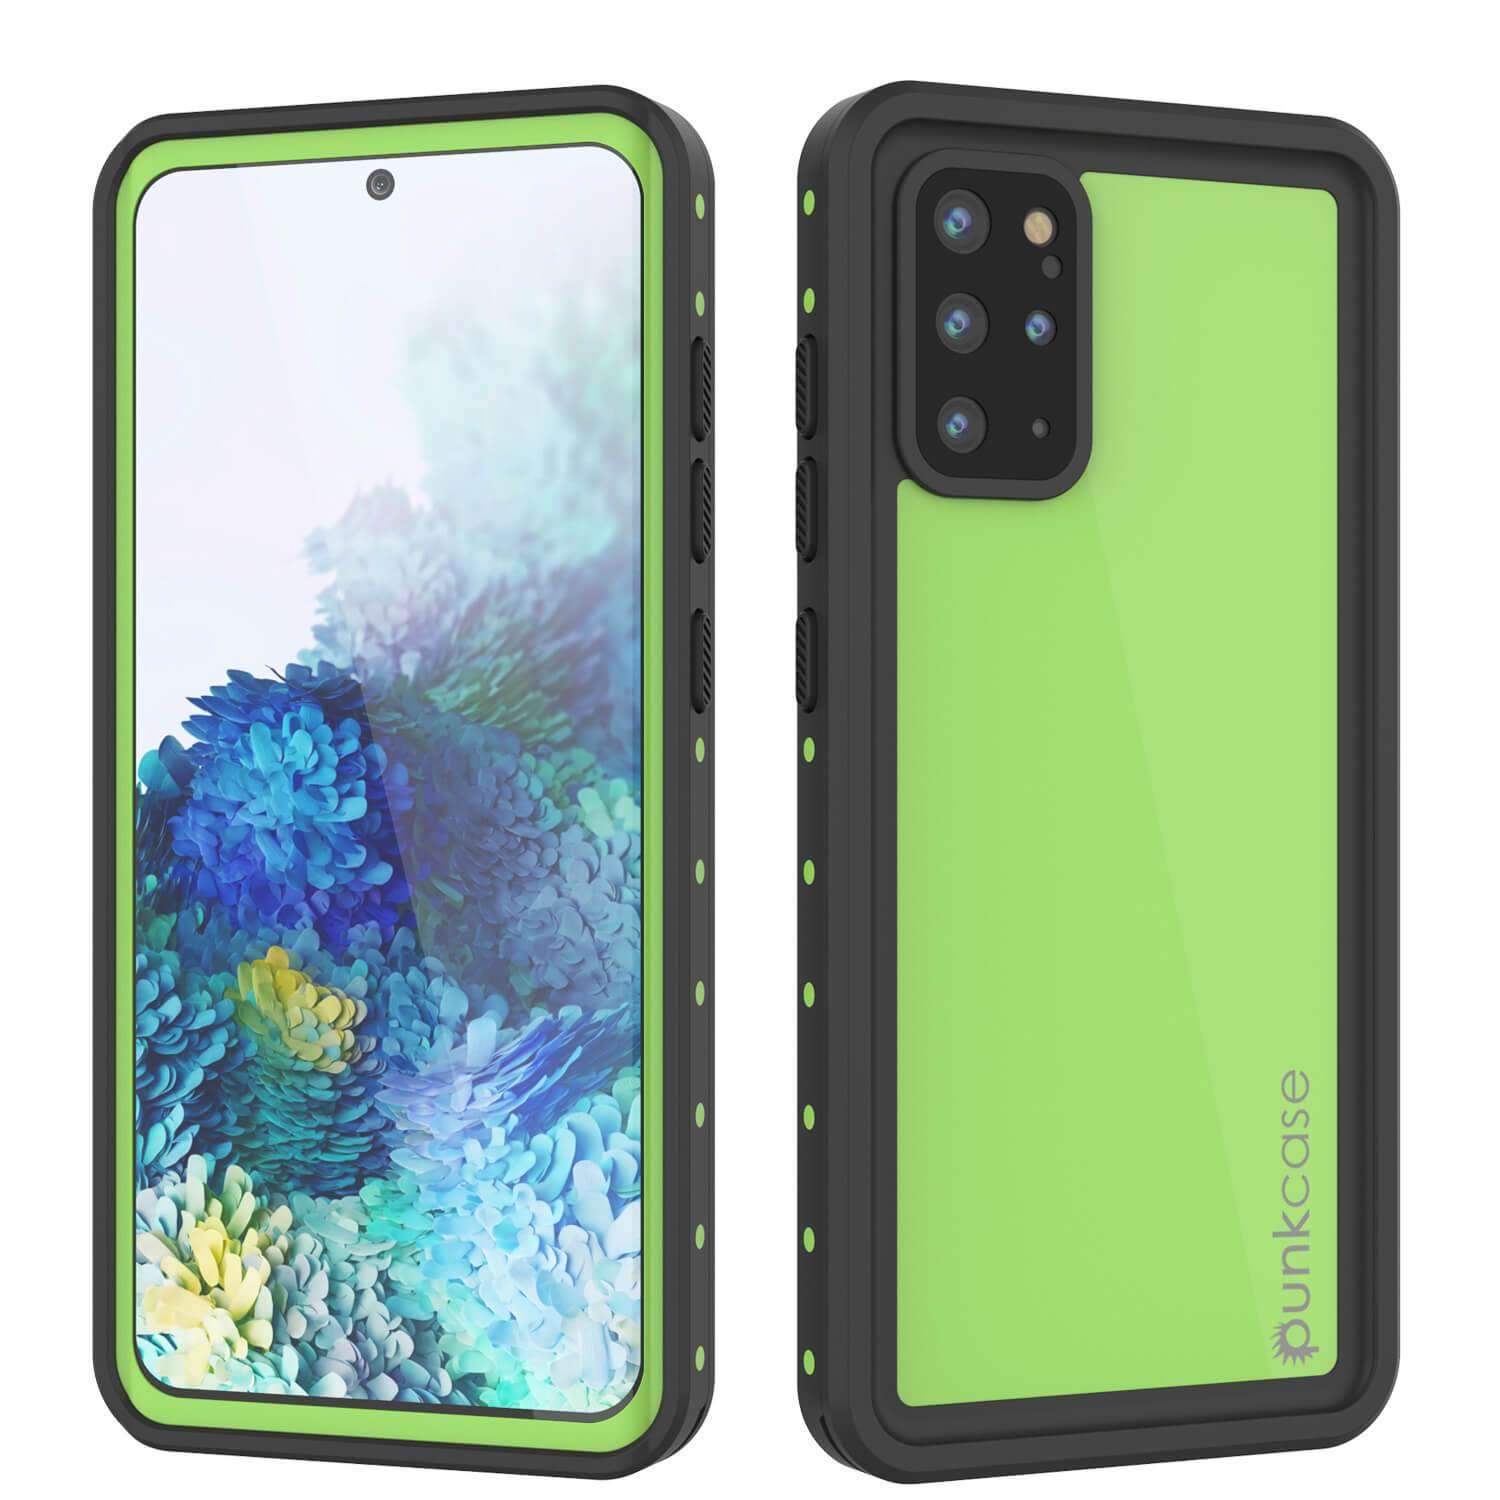 Galaxy S20+ Plus Waterproof Case PunkCase StudStar Light Green Thin 6.6ft Underwater IP68 ShockProof